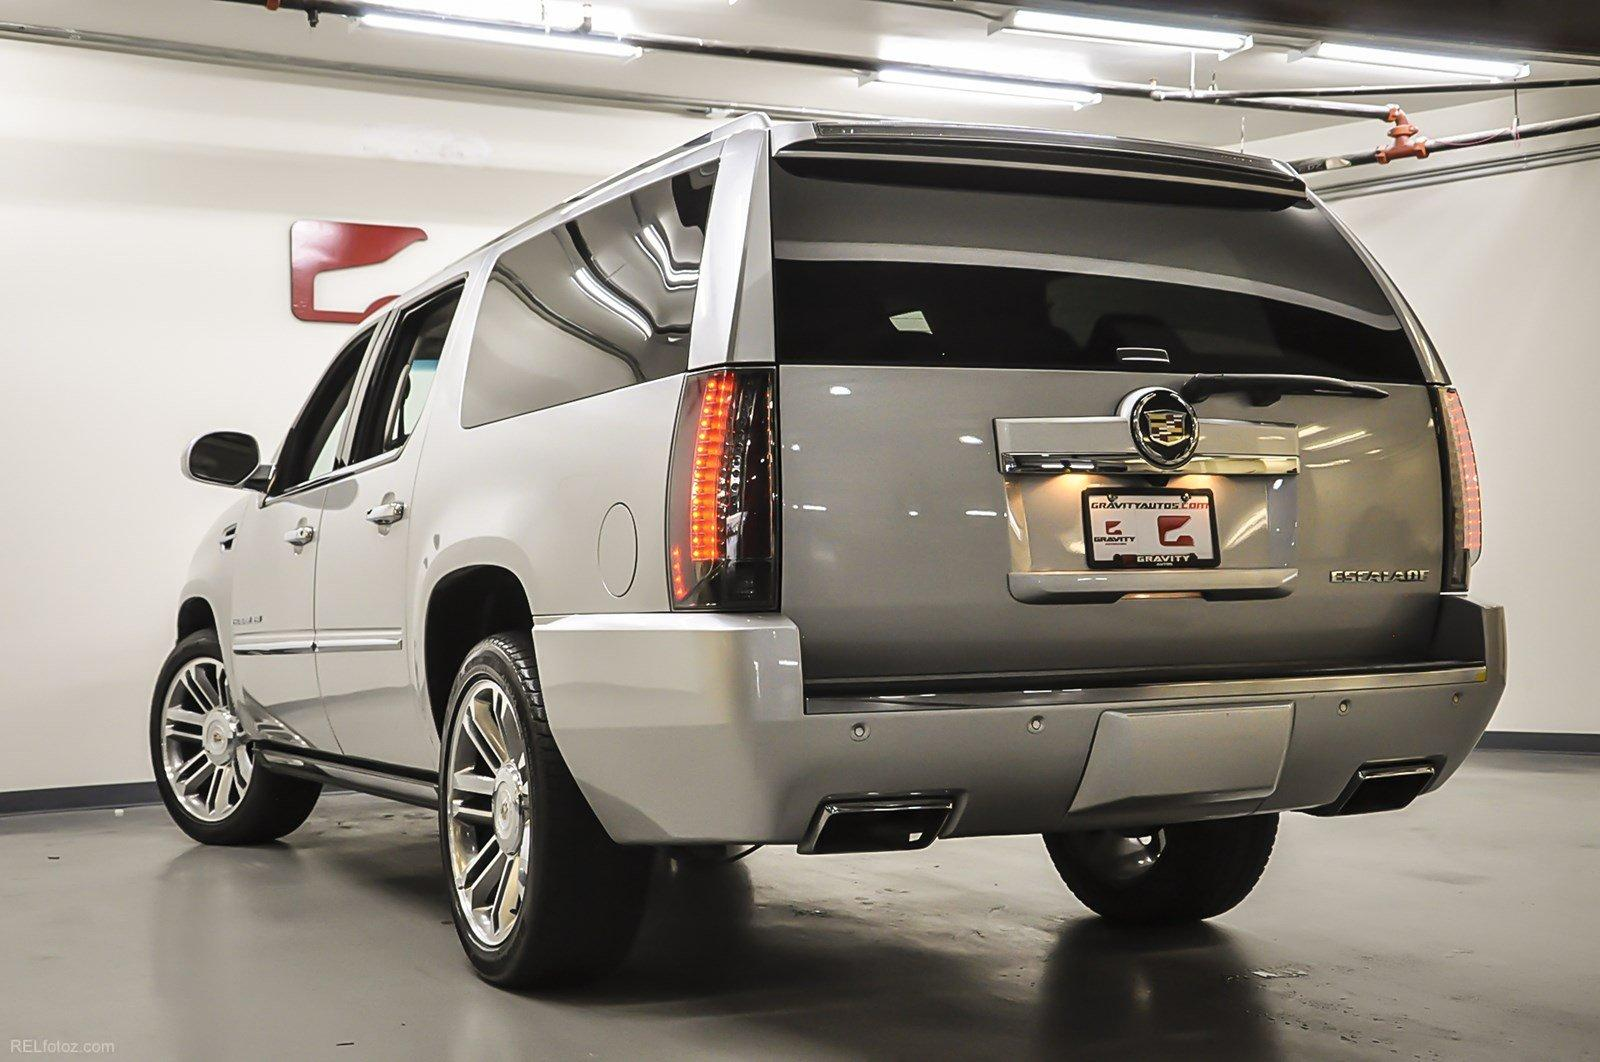 galleries united content cadillac en vehicles escalade detail us platinum premium pressroom photos media pages states